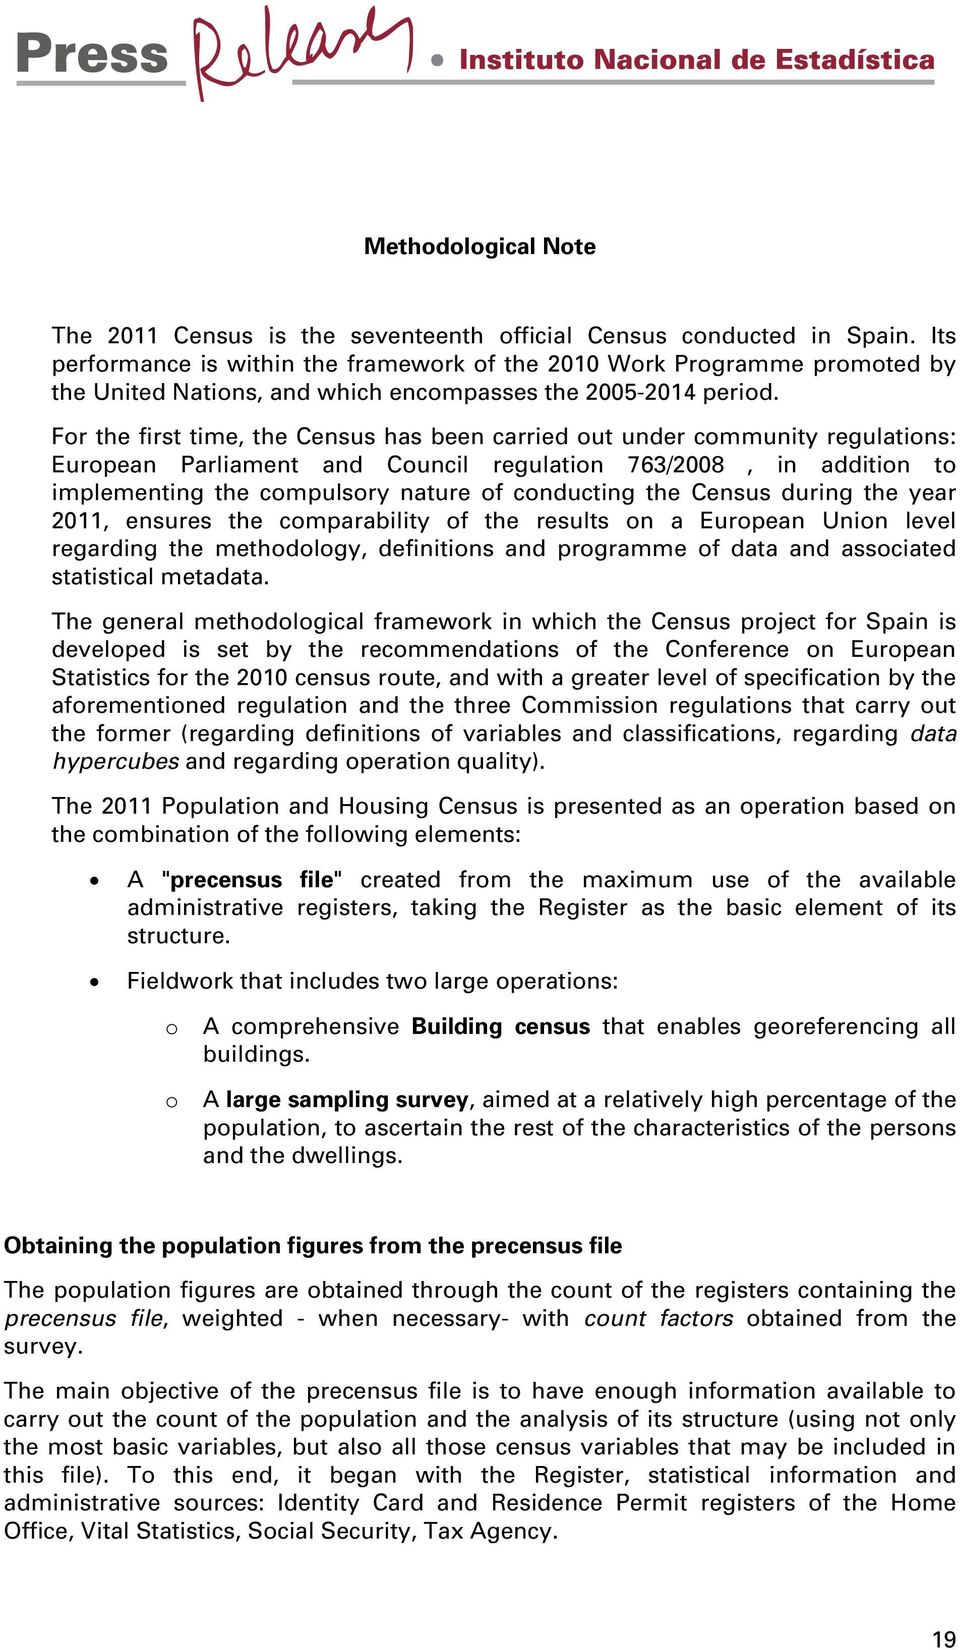 For the first time, the Census has been carried out under community regulations: European Parliament and Council regulation 763/2008, in addition to implementing the compulsory nature of conducting